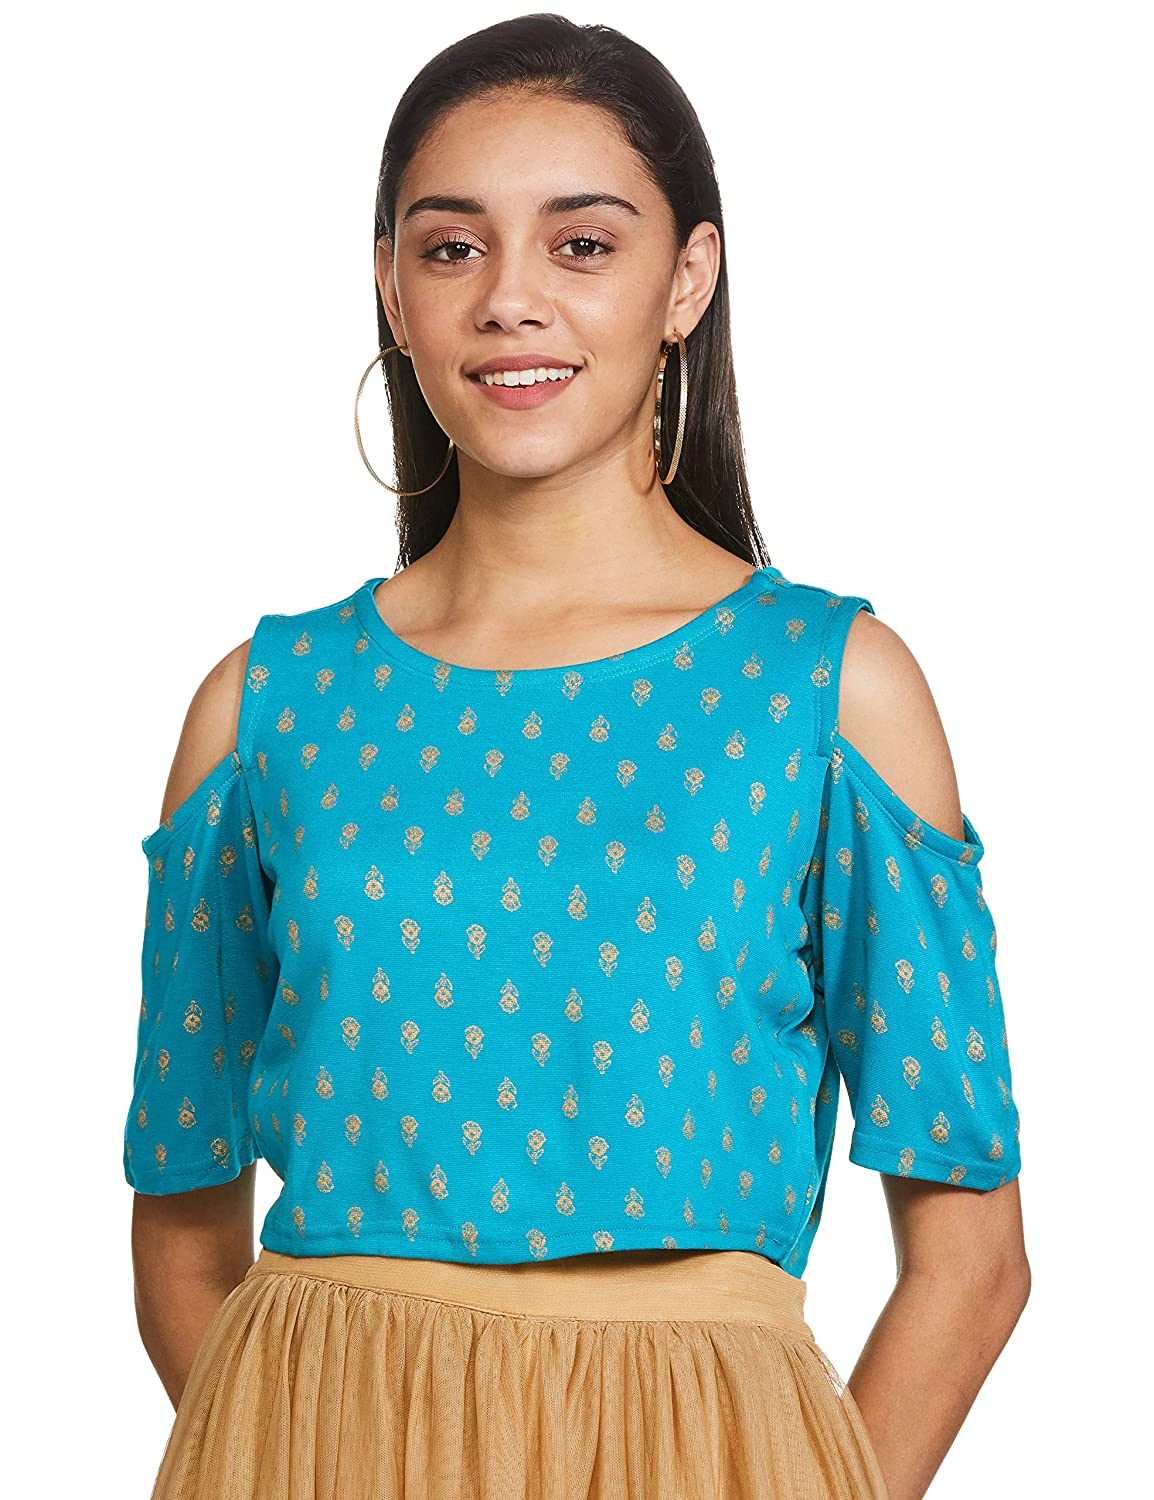 Global desi Women's Regular Fit Top Starting @ ₹191